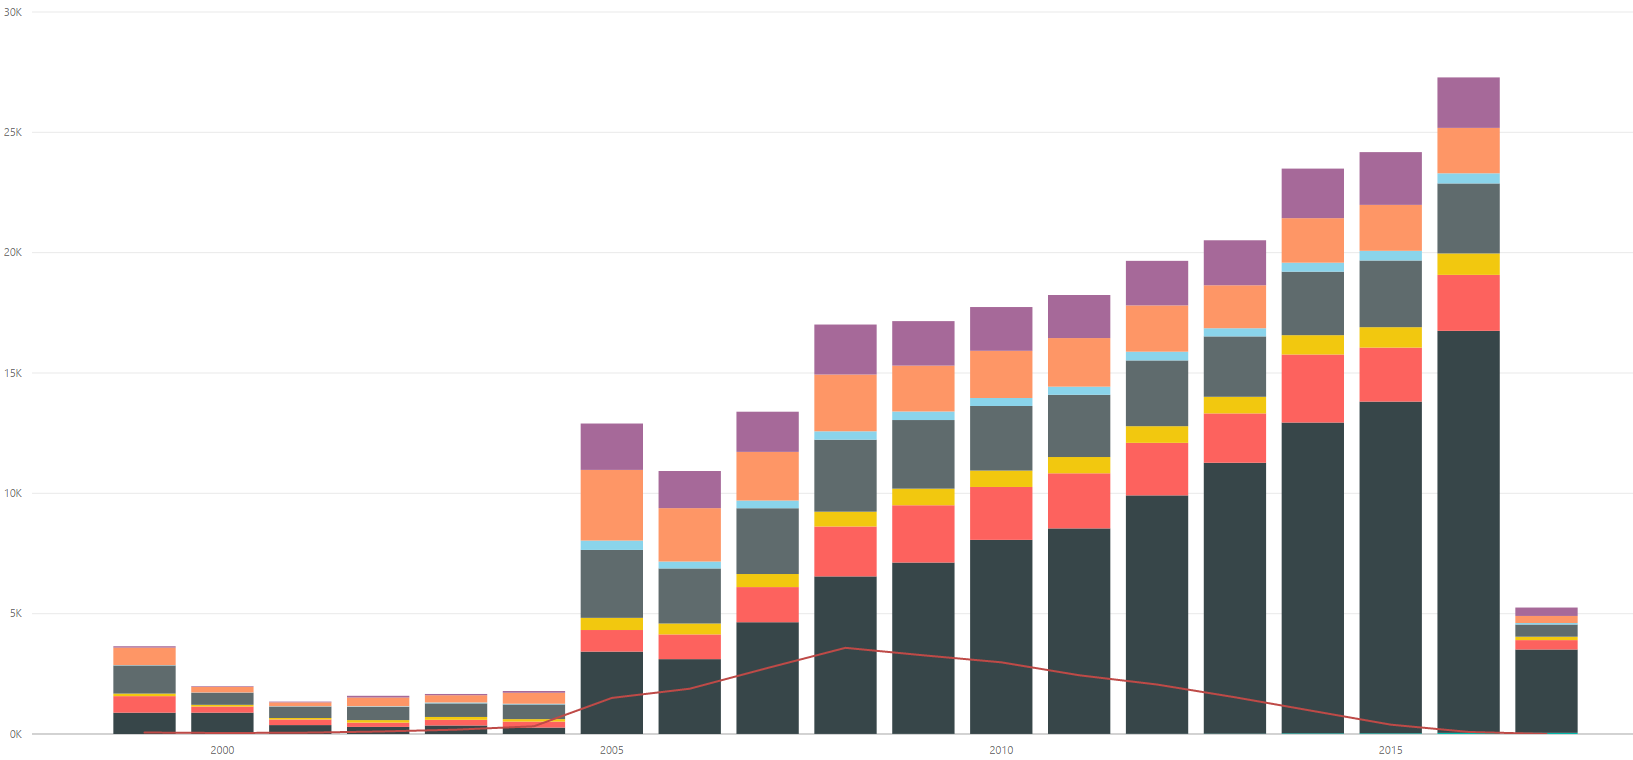 Clinical trials submitted to ClinicalTrials.gov by date, color coded by phase.